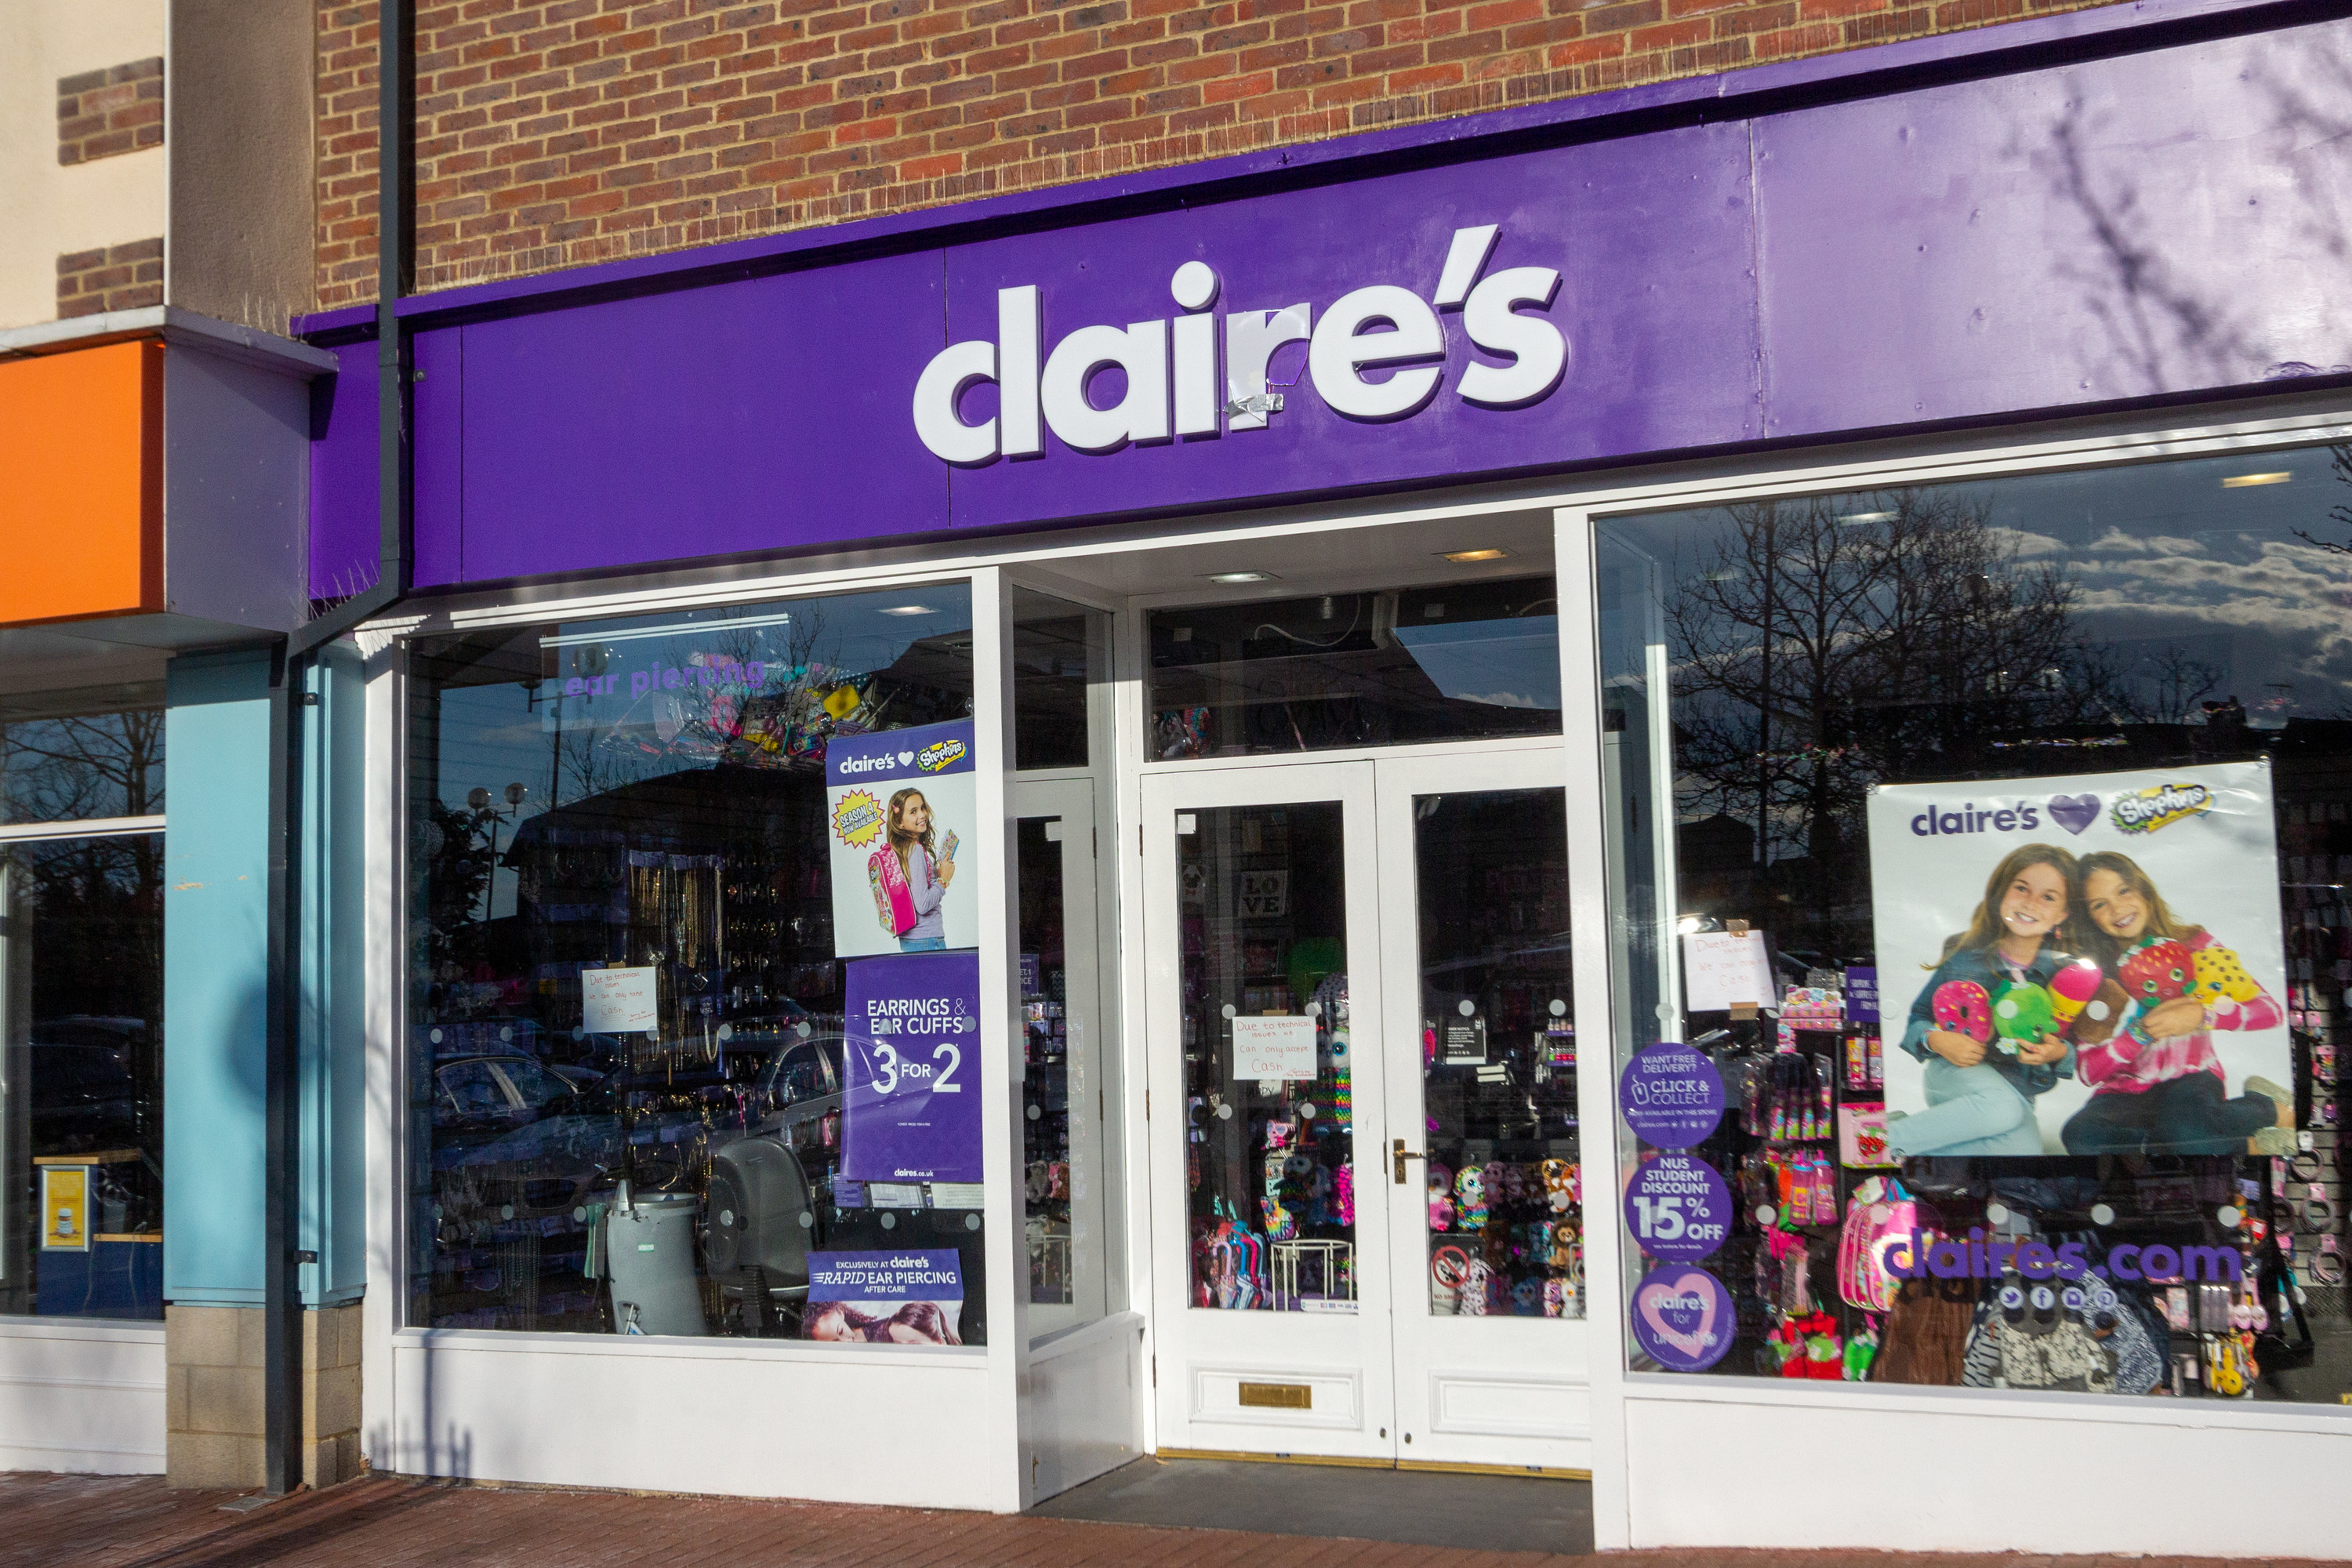 the outside of a claire's store